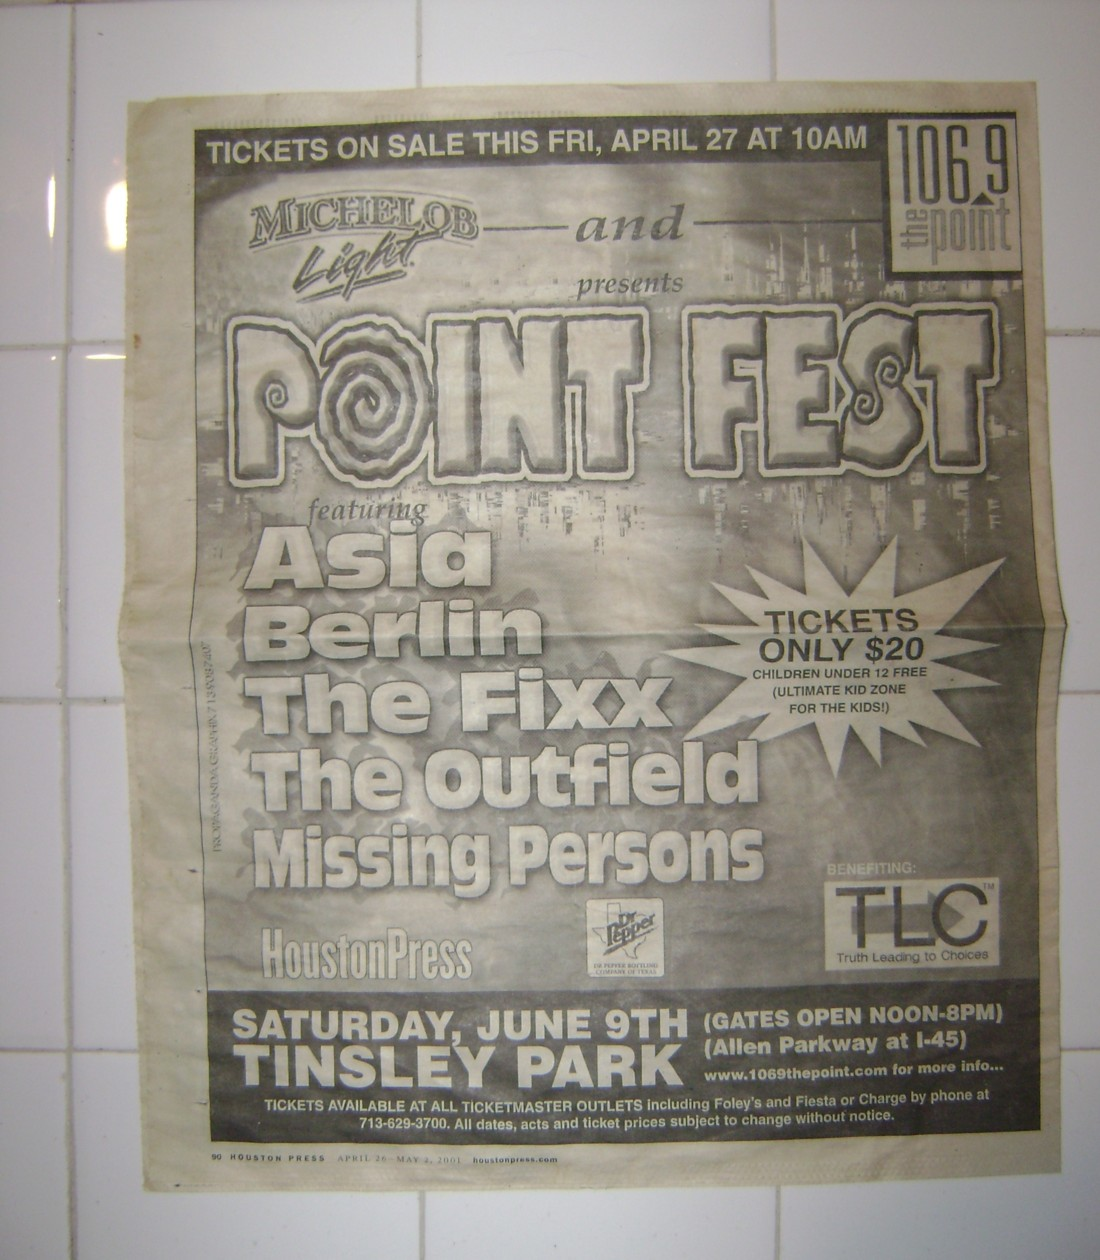 Asia - Pointfest - June 9_01 (Houston Press Ad) - 5